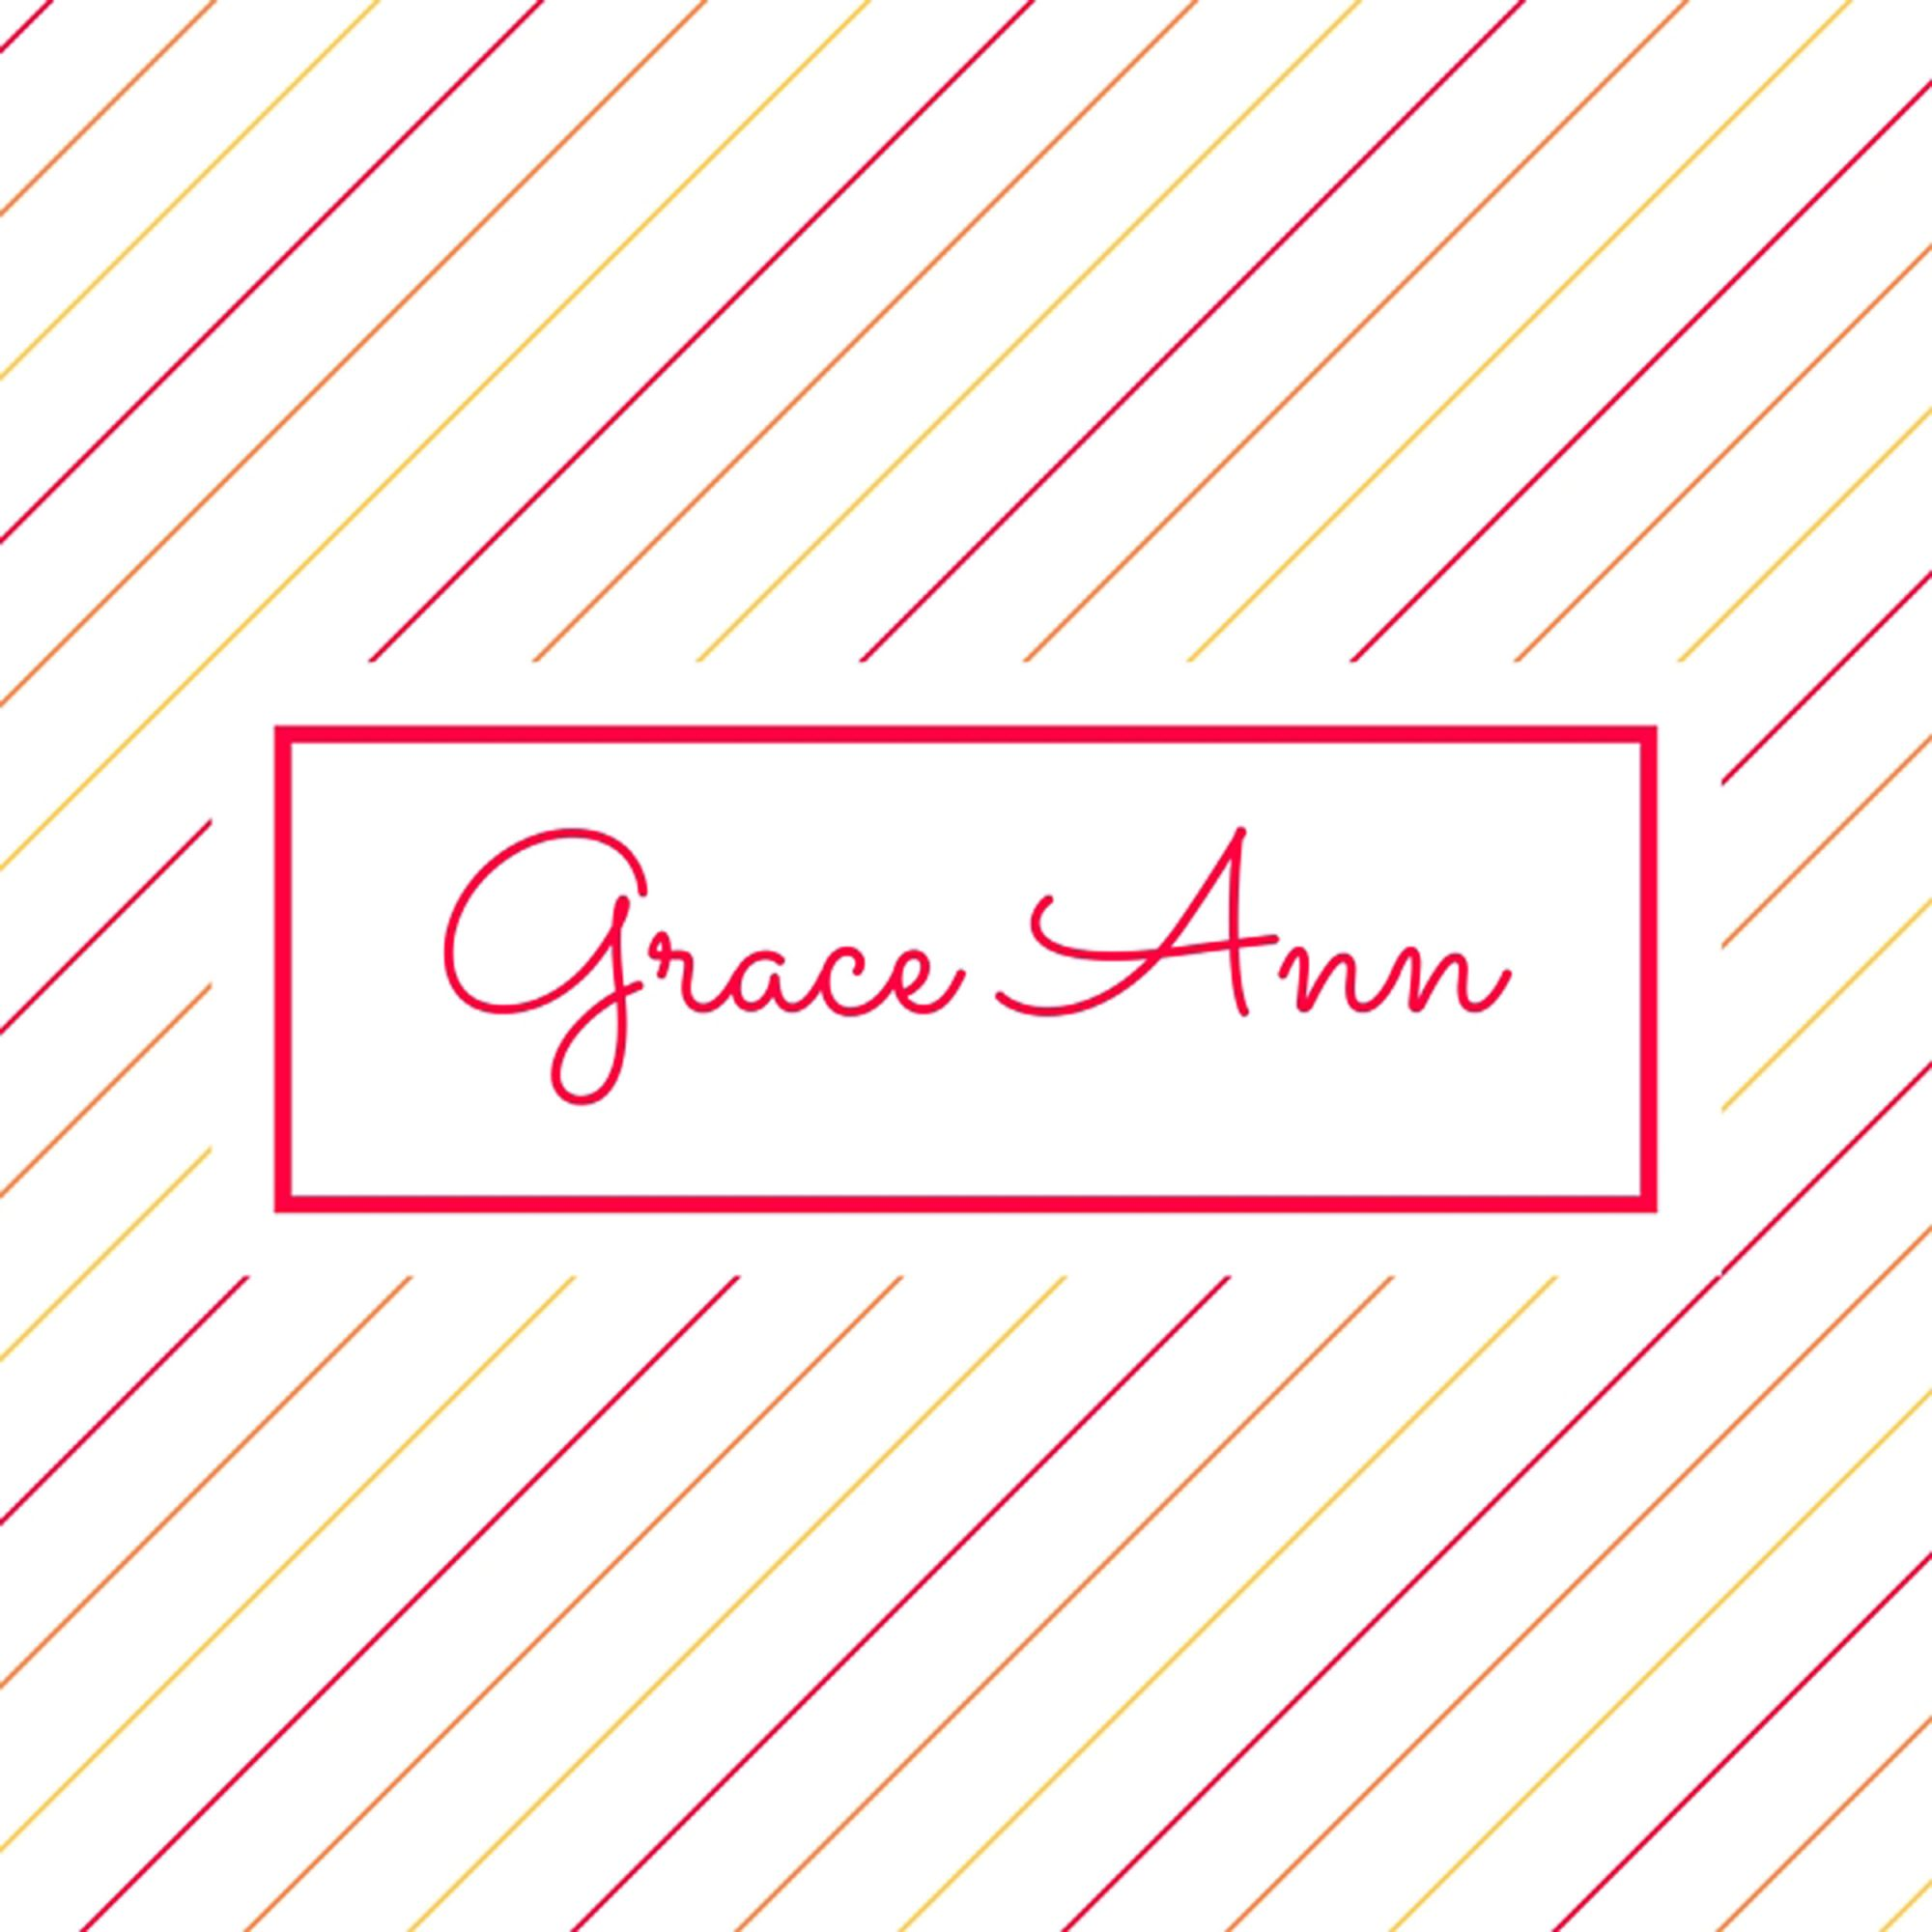 Double Name: Grace Ann